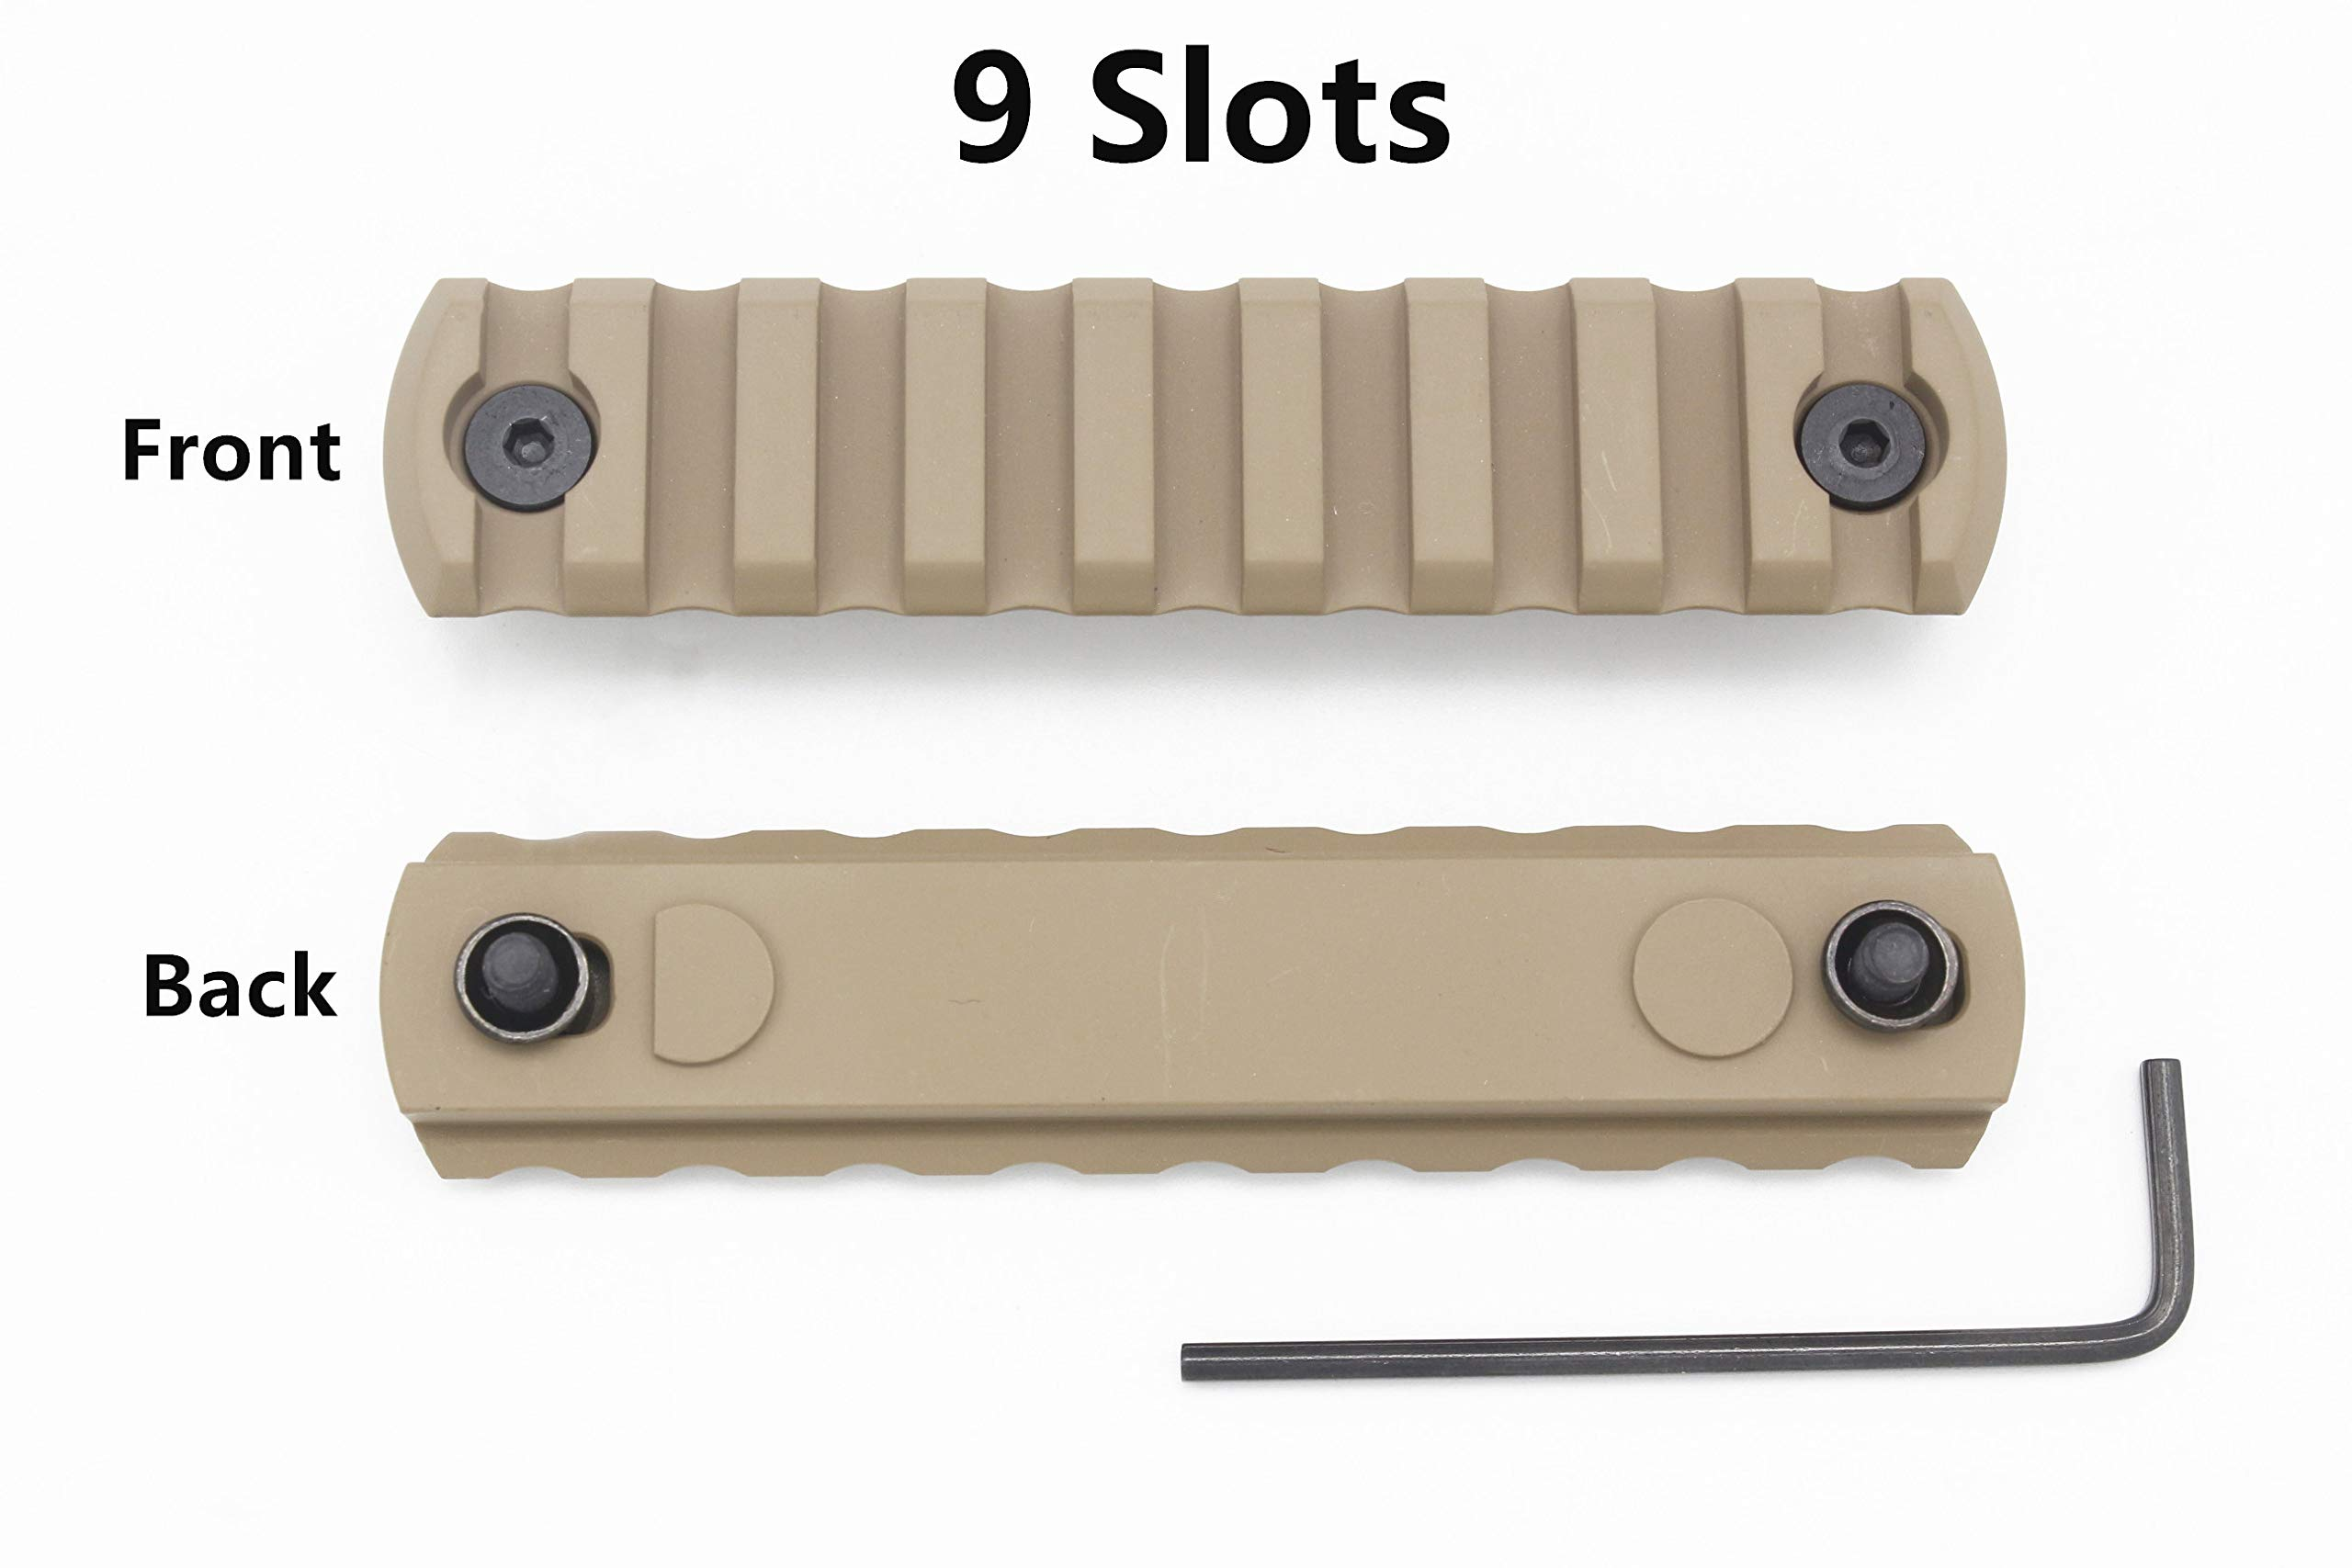 Active-8 Keymod Picatinny Rail, 9-Slot Lightweight Aluminum Weaver Rail Section Accessories for Keymod Rail System by Active-8